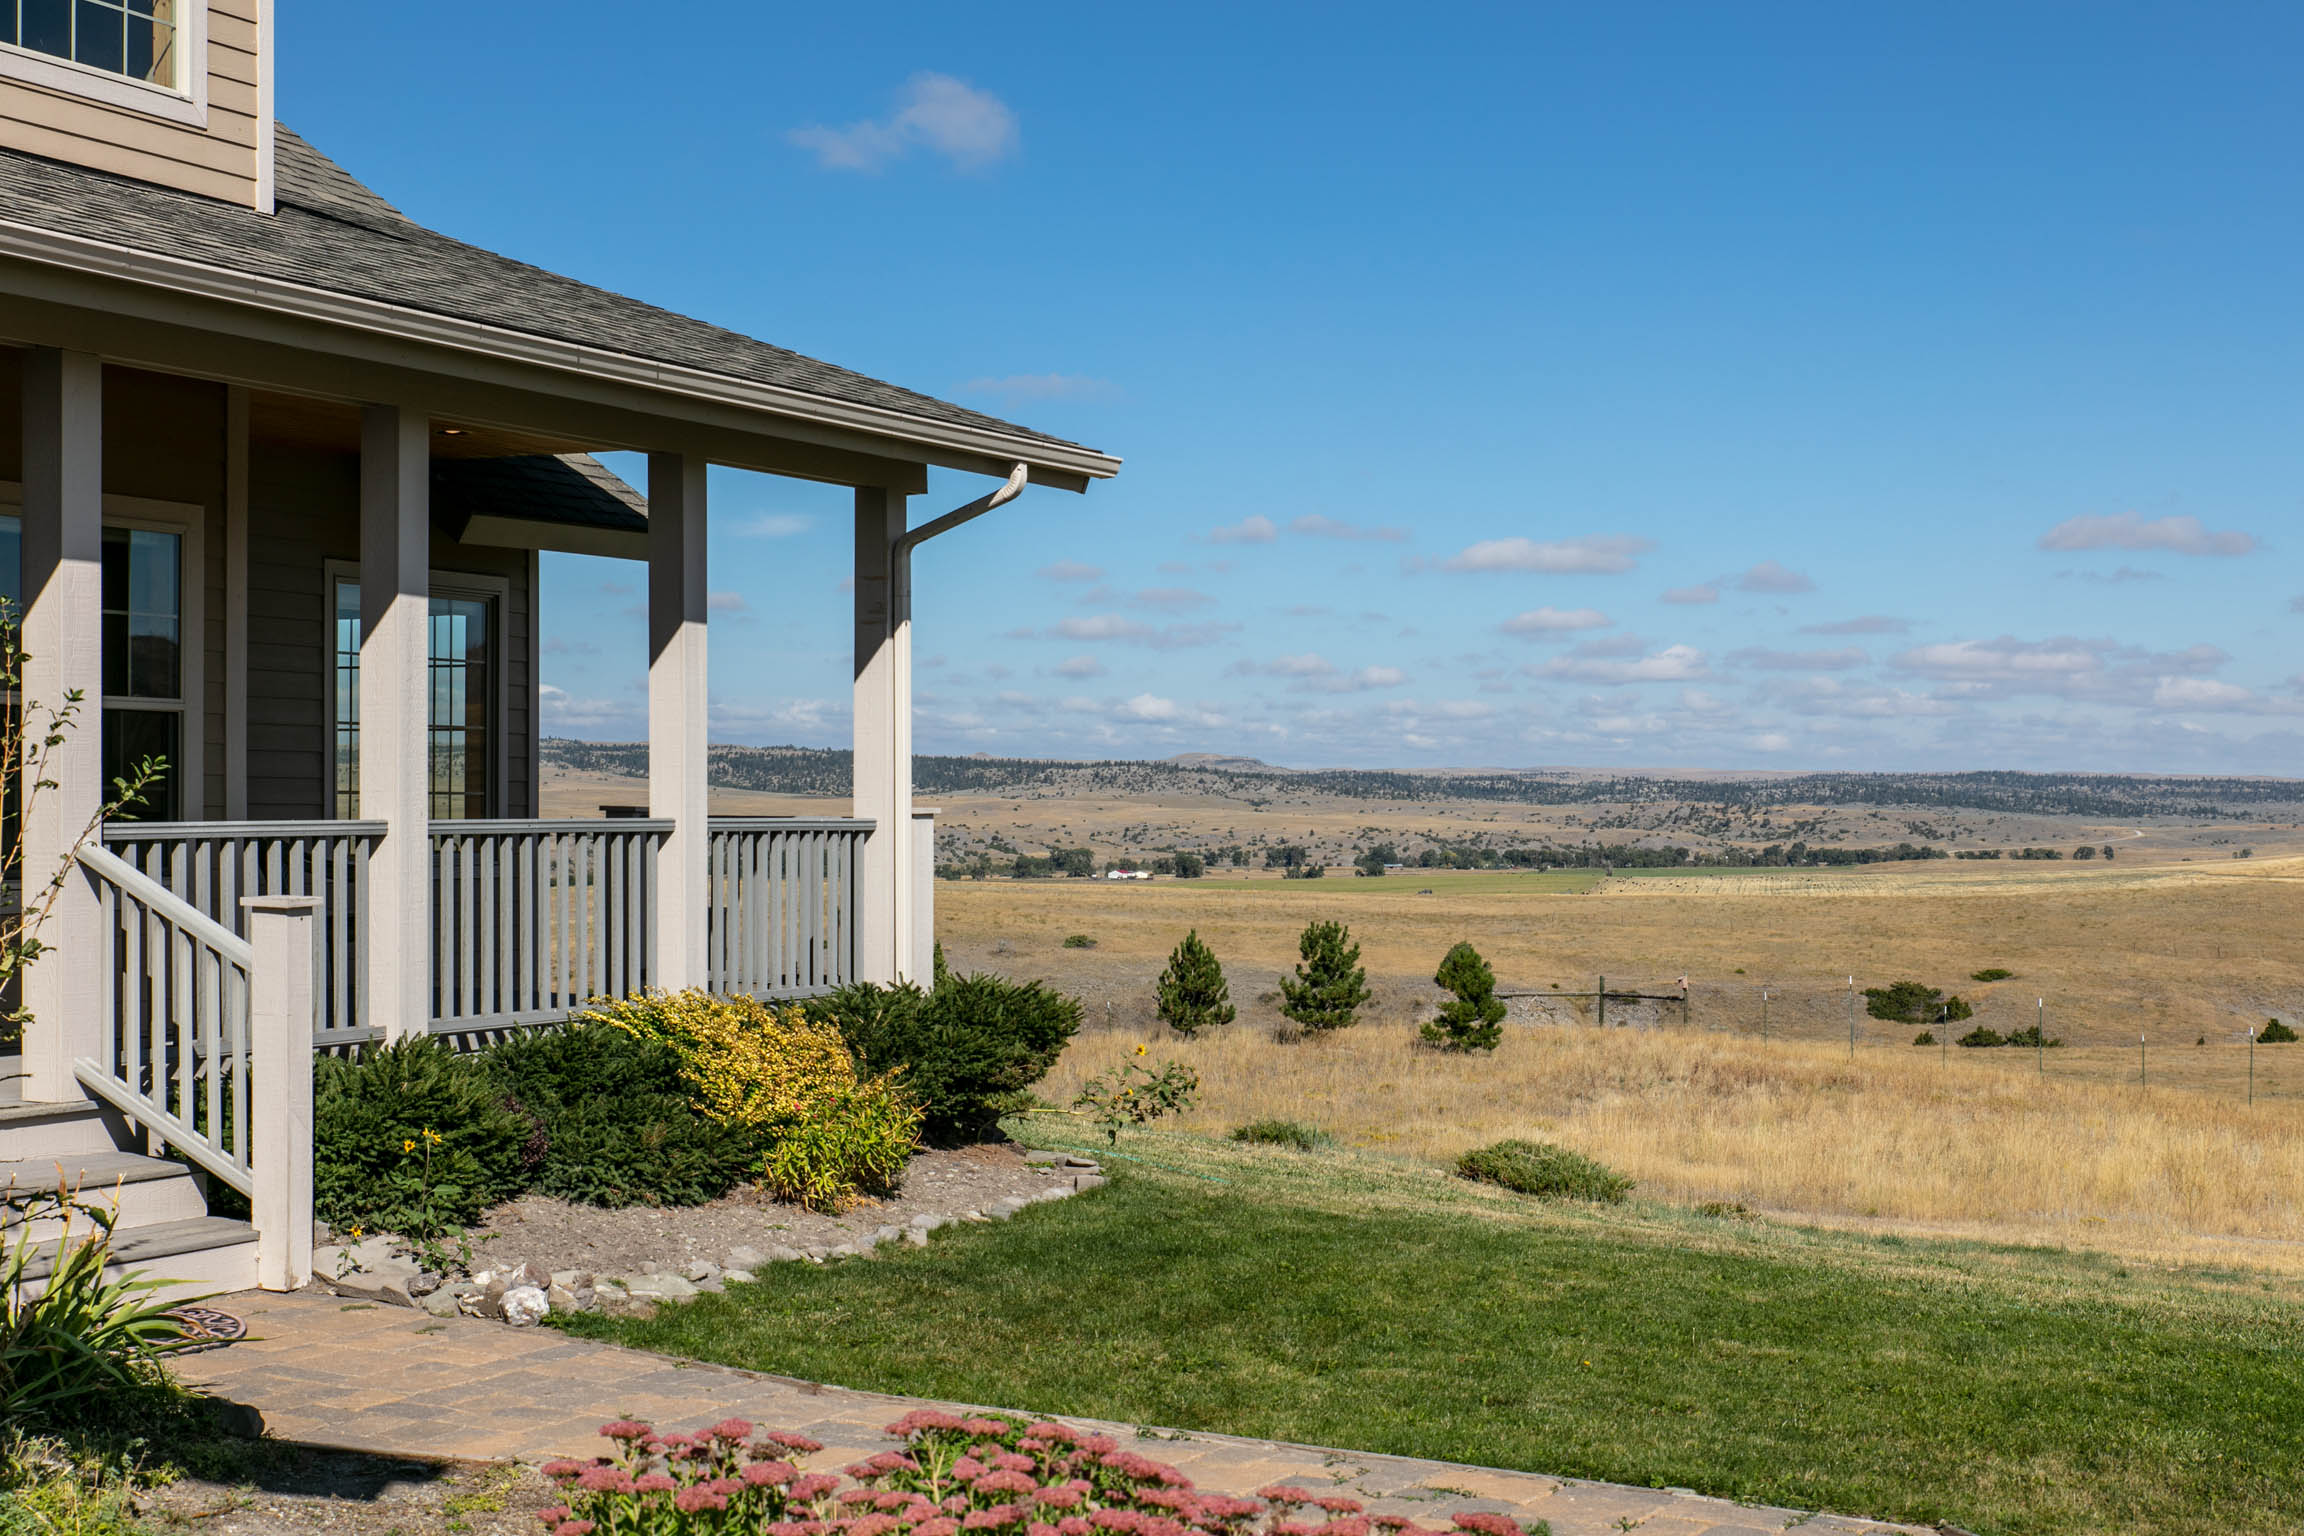 LOWER SWEET GRASS RANCH Listing Agents: Jackie Wickens & Trent Lister